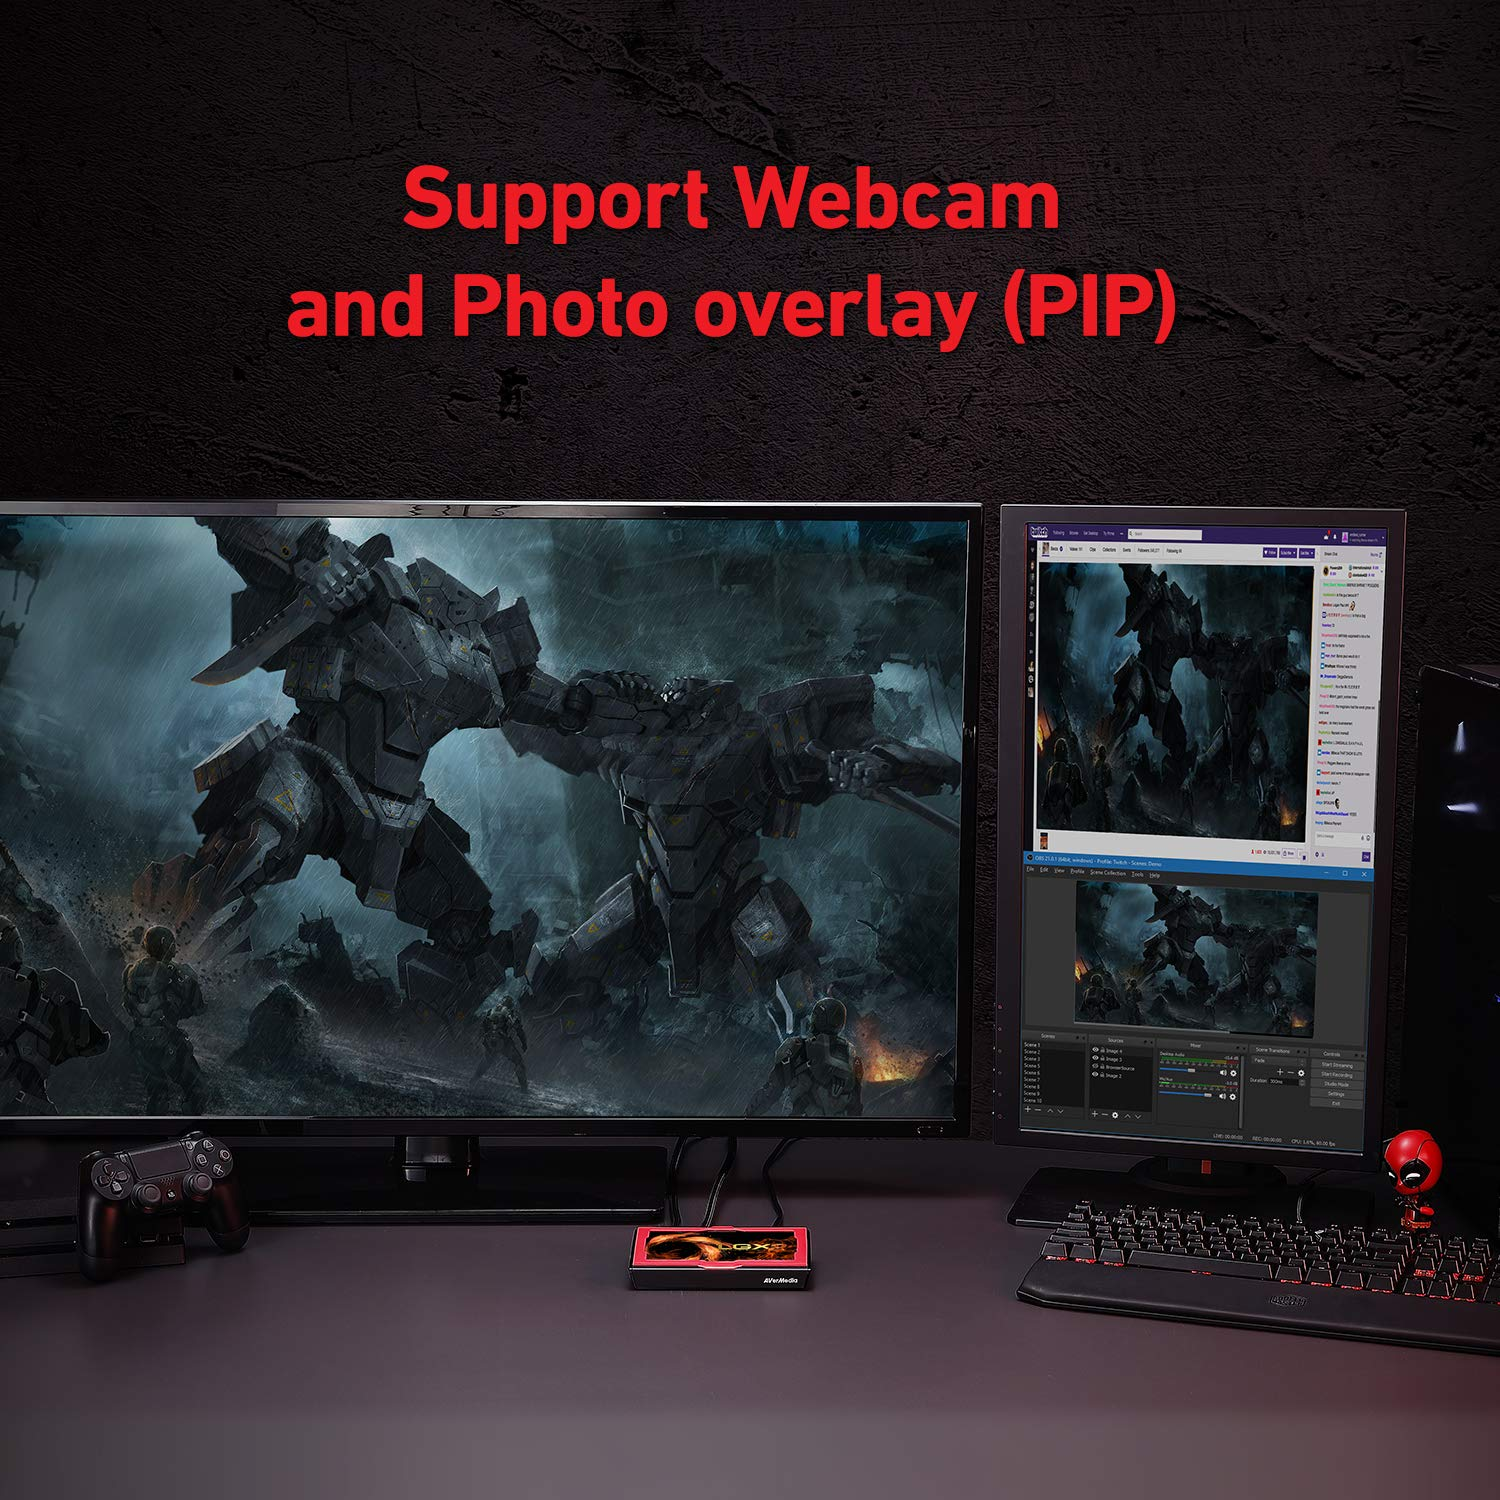 Plug and play Capture Card - YouTube /& Twitch Live Gamer Portable 2 Switch gameplay in 1080p60 LGP 2 AVerMedia GC510